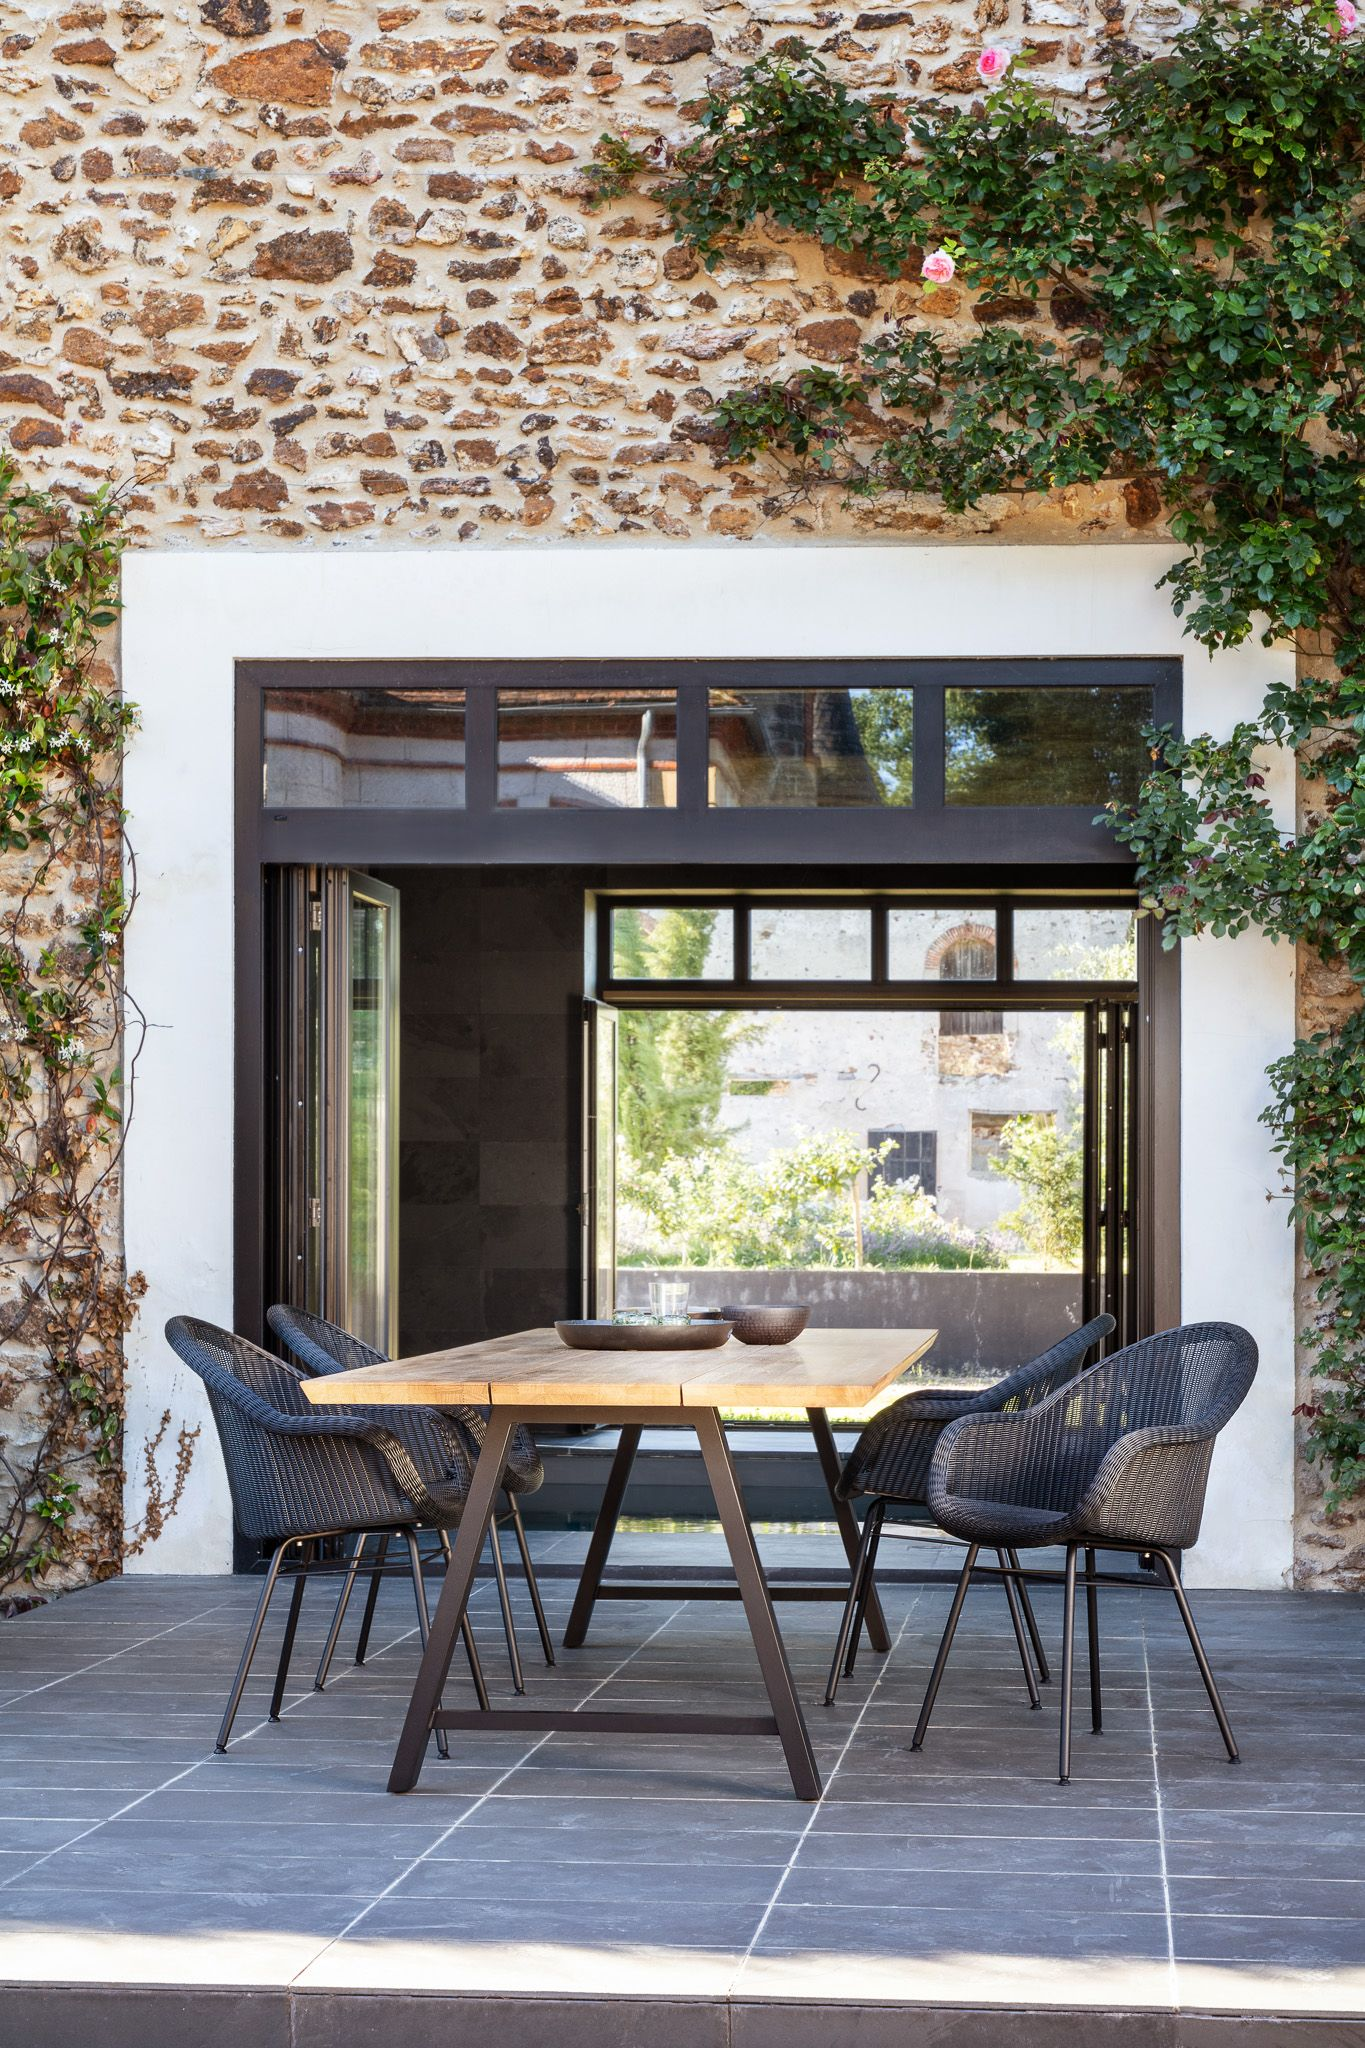 Dine Outdoors At This Solid Teak Table And Delicately Woven Outdoor Chairs By Vincent Sheppard Buitenstoelen Eettafel Meubel Ideeen